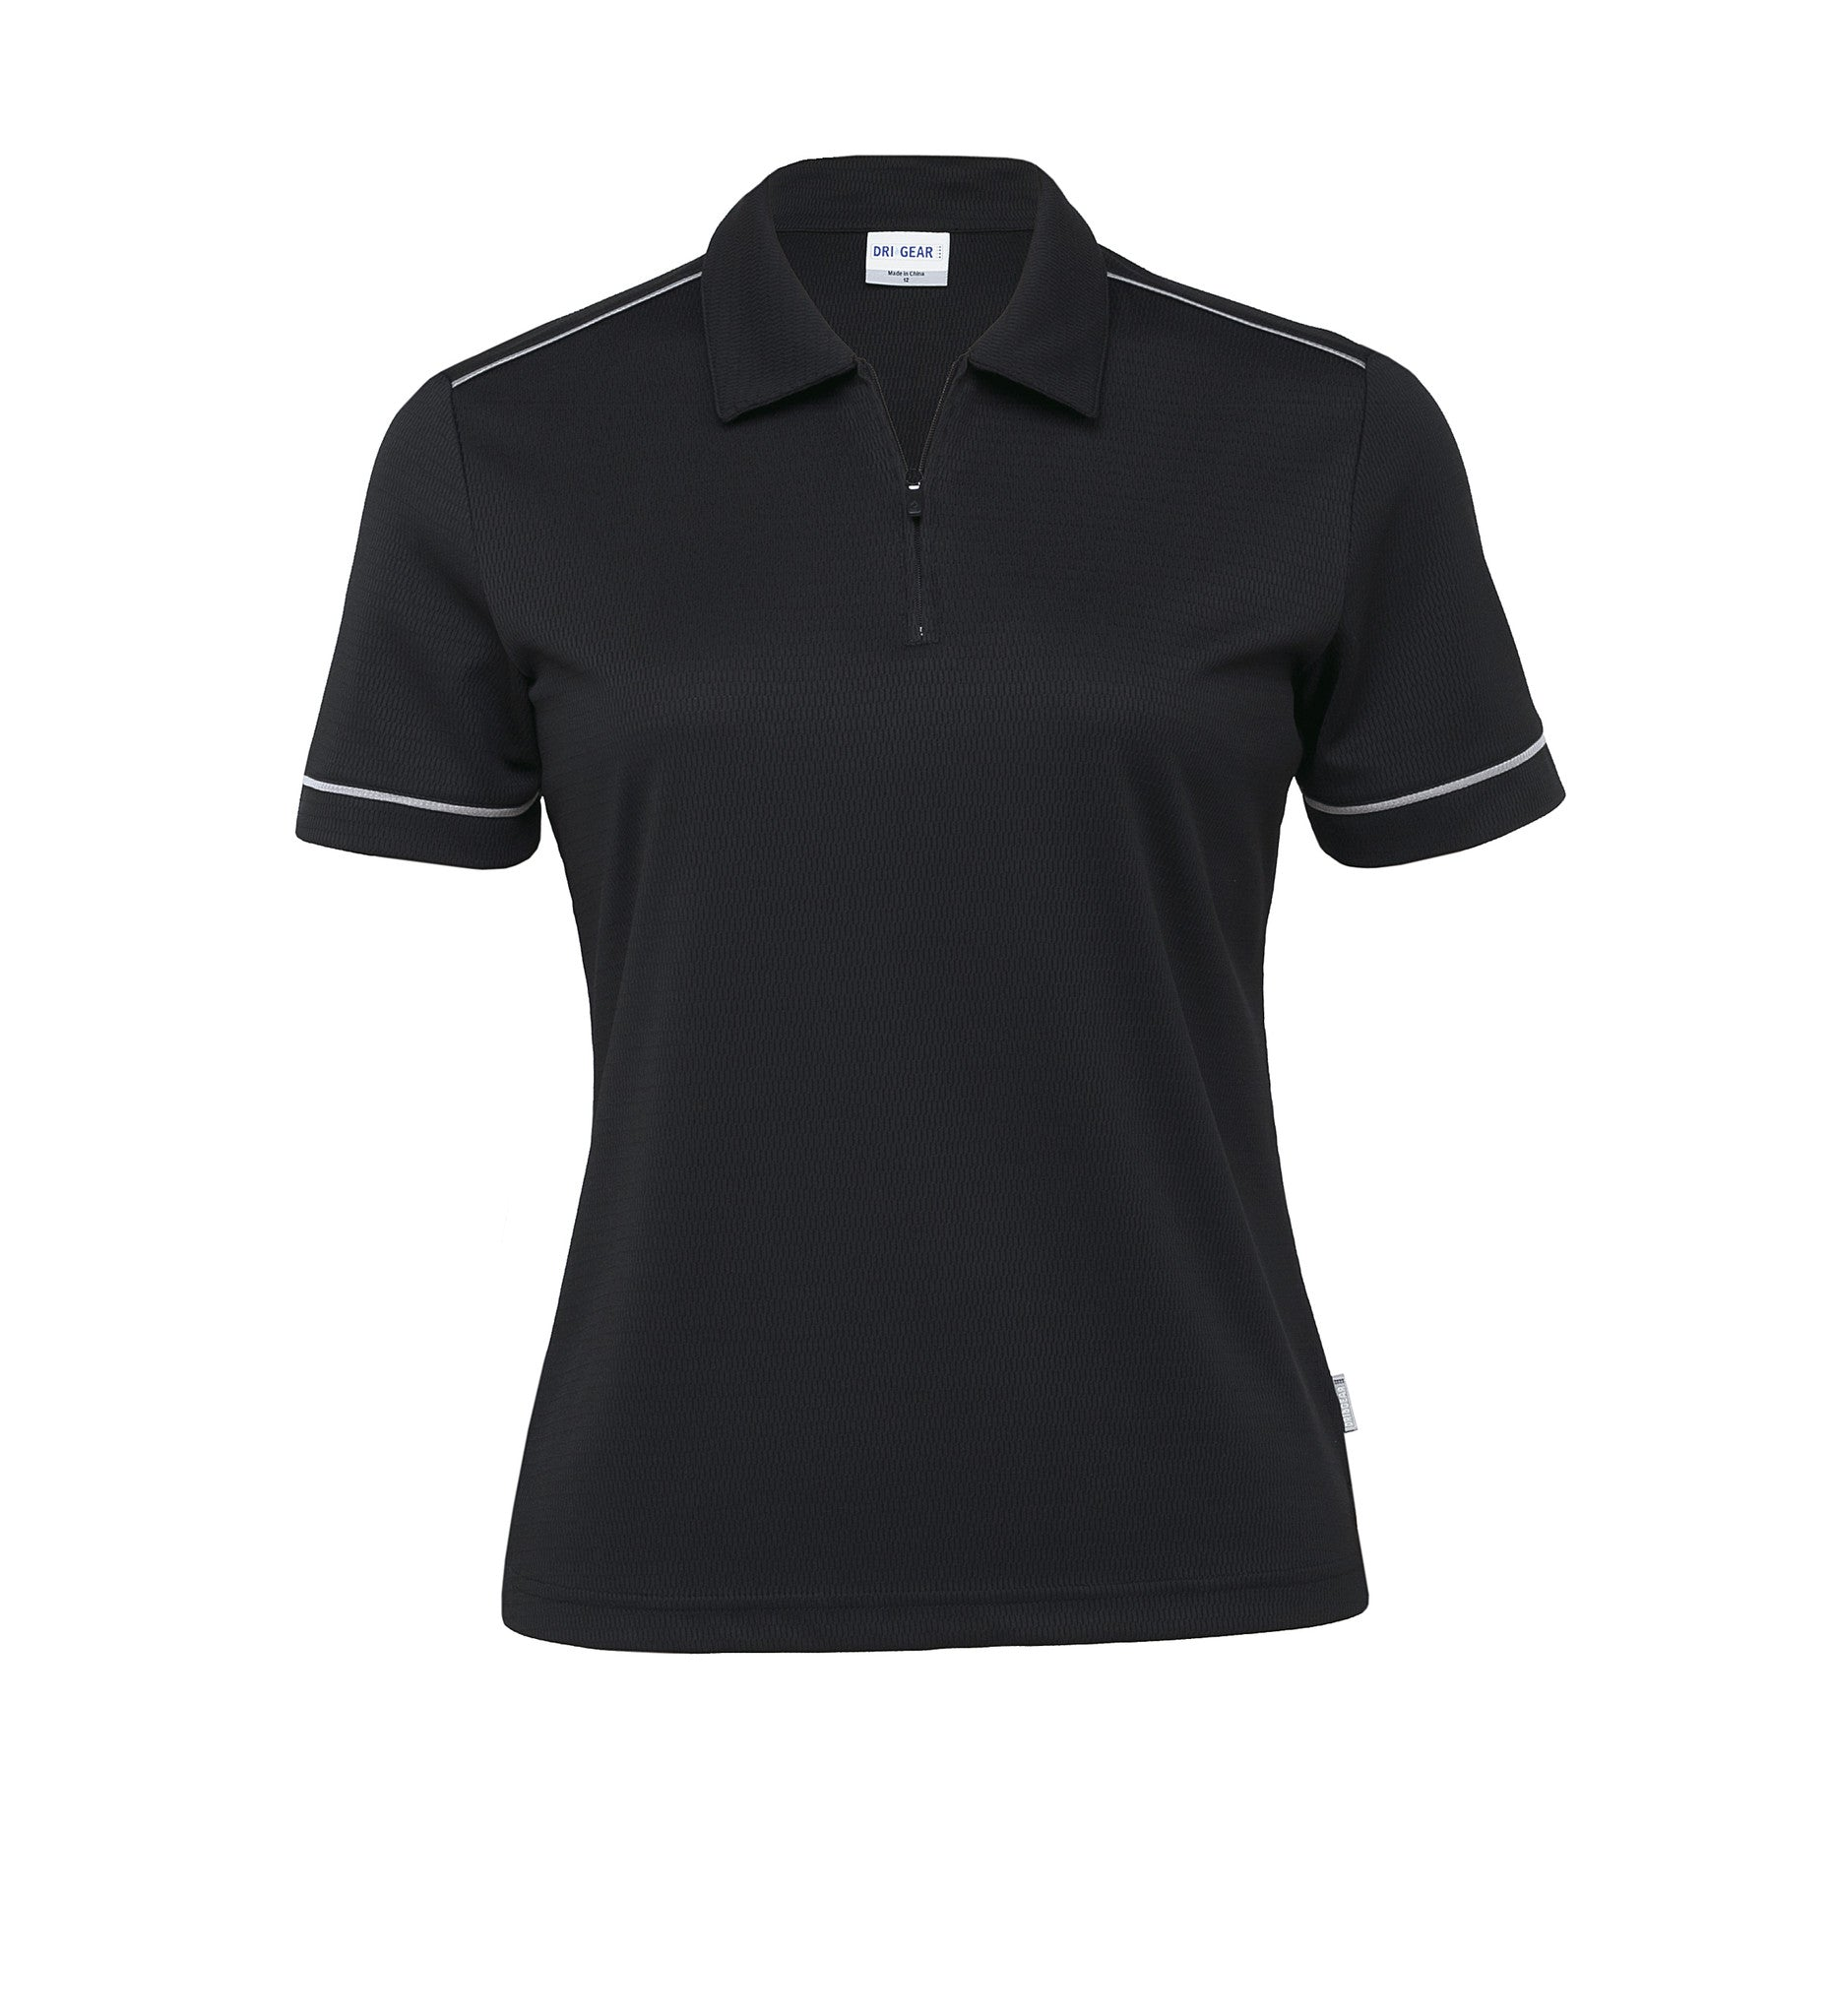 Gear For Life-Gear For Life Dri Gear Womens Matrix Polo--Corporate Apparel Online - 1